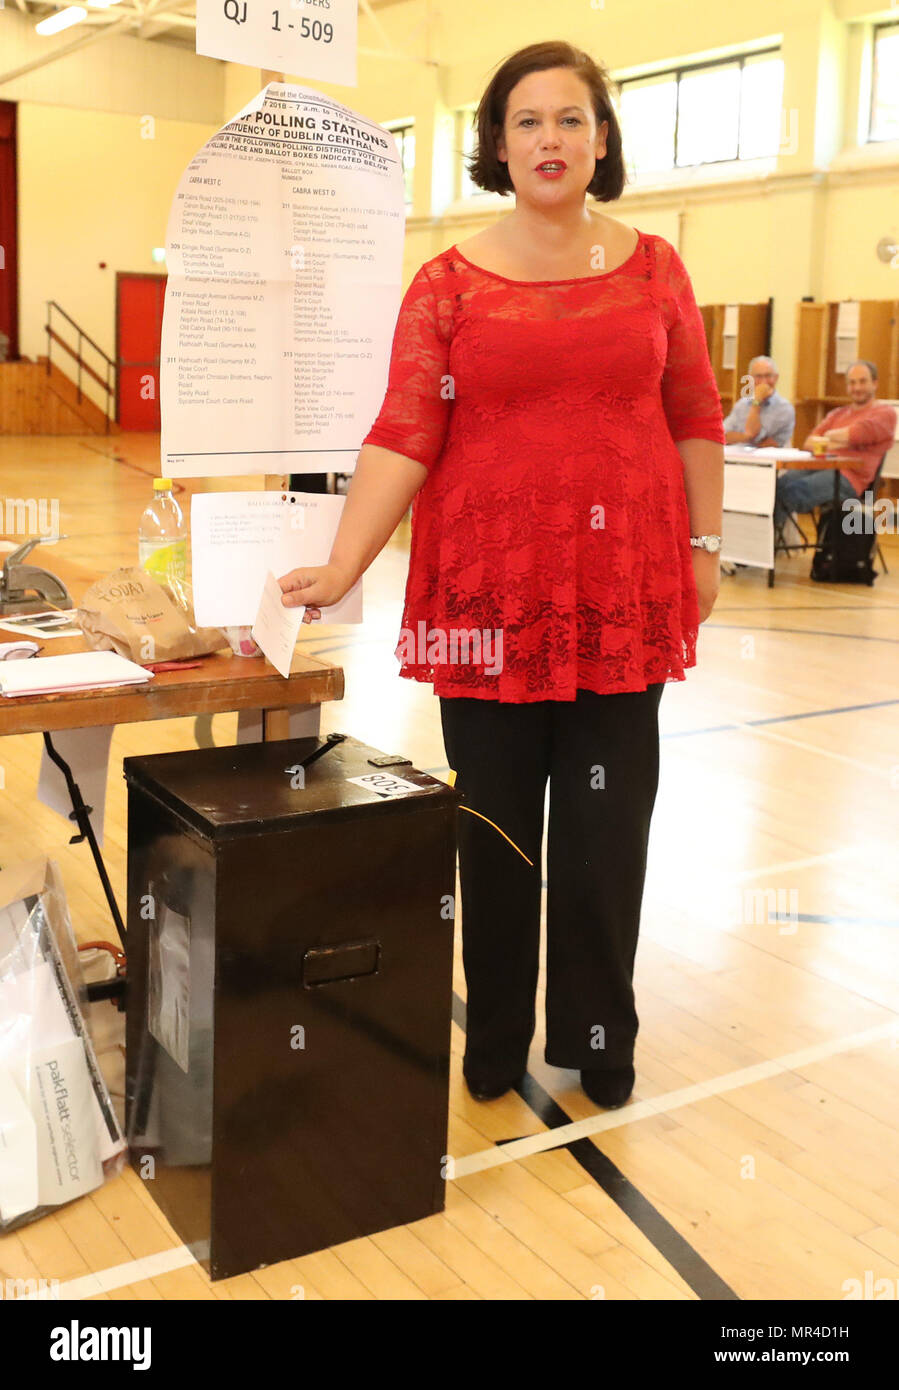 Sinn Fein leader Mary Lou McDonald cast her vote at the polling station in St Joseph's National School, Dublin, as the country goes to the polls to vote in the referendum on the 8th Amendment of the Irish Constitution. - Stock Image